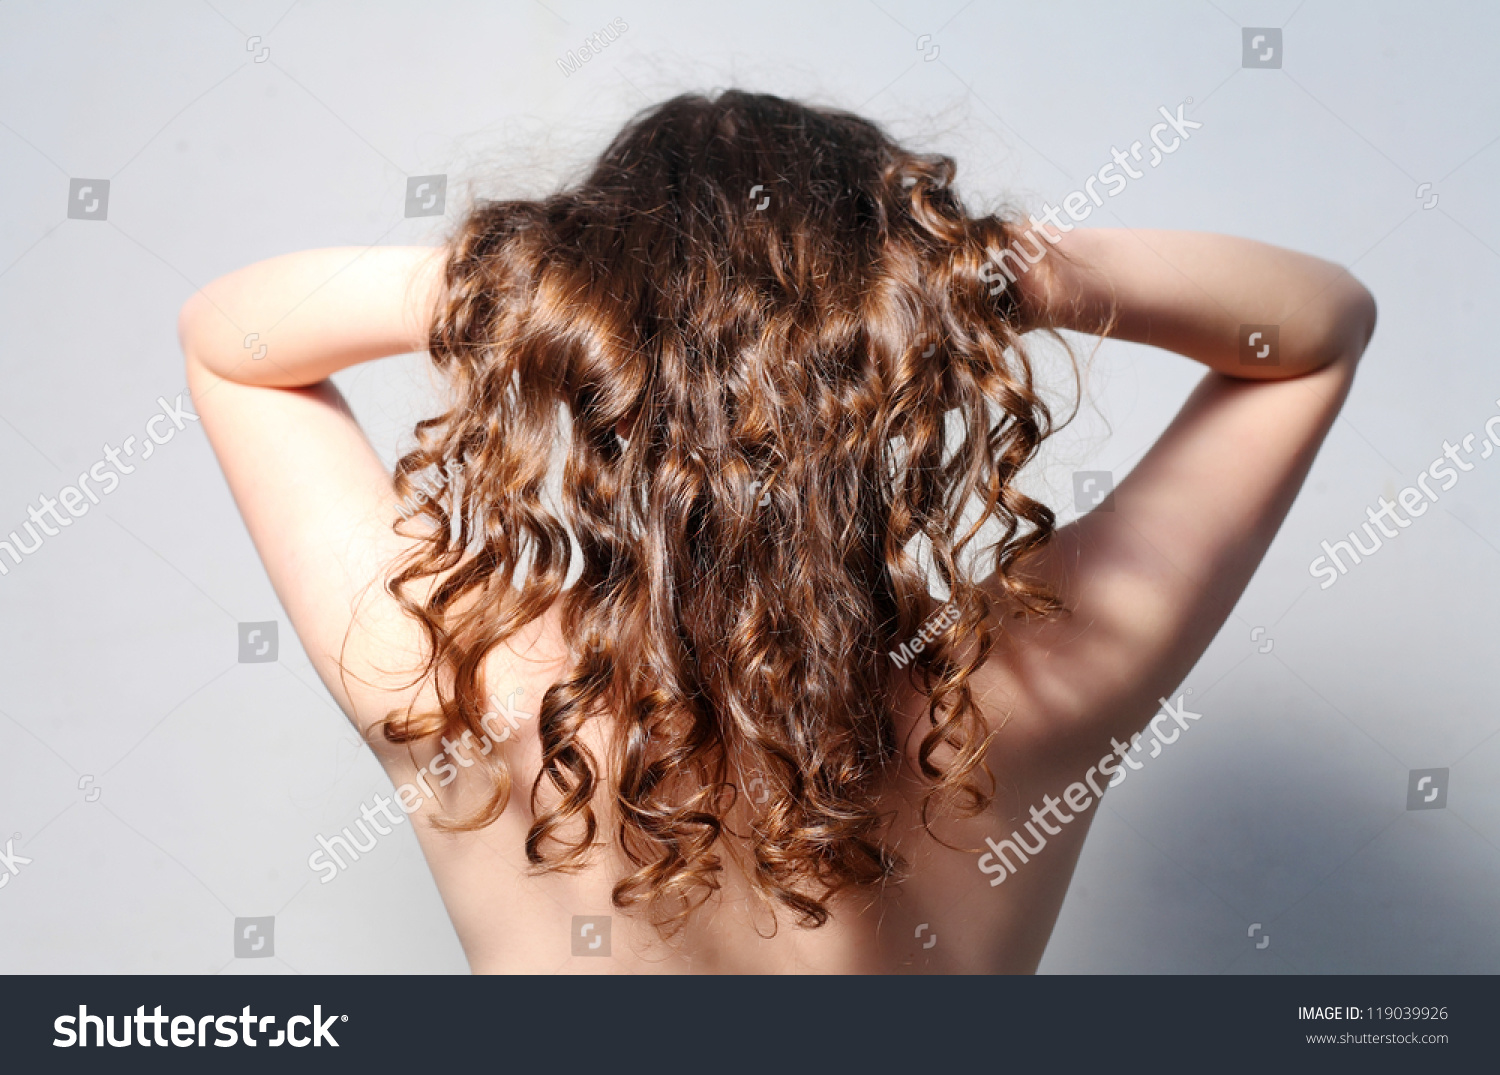 Topless lady posing with her curly red hairs lifted up in hands - rear view shot.